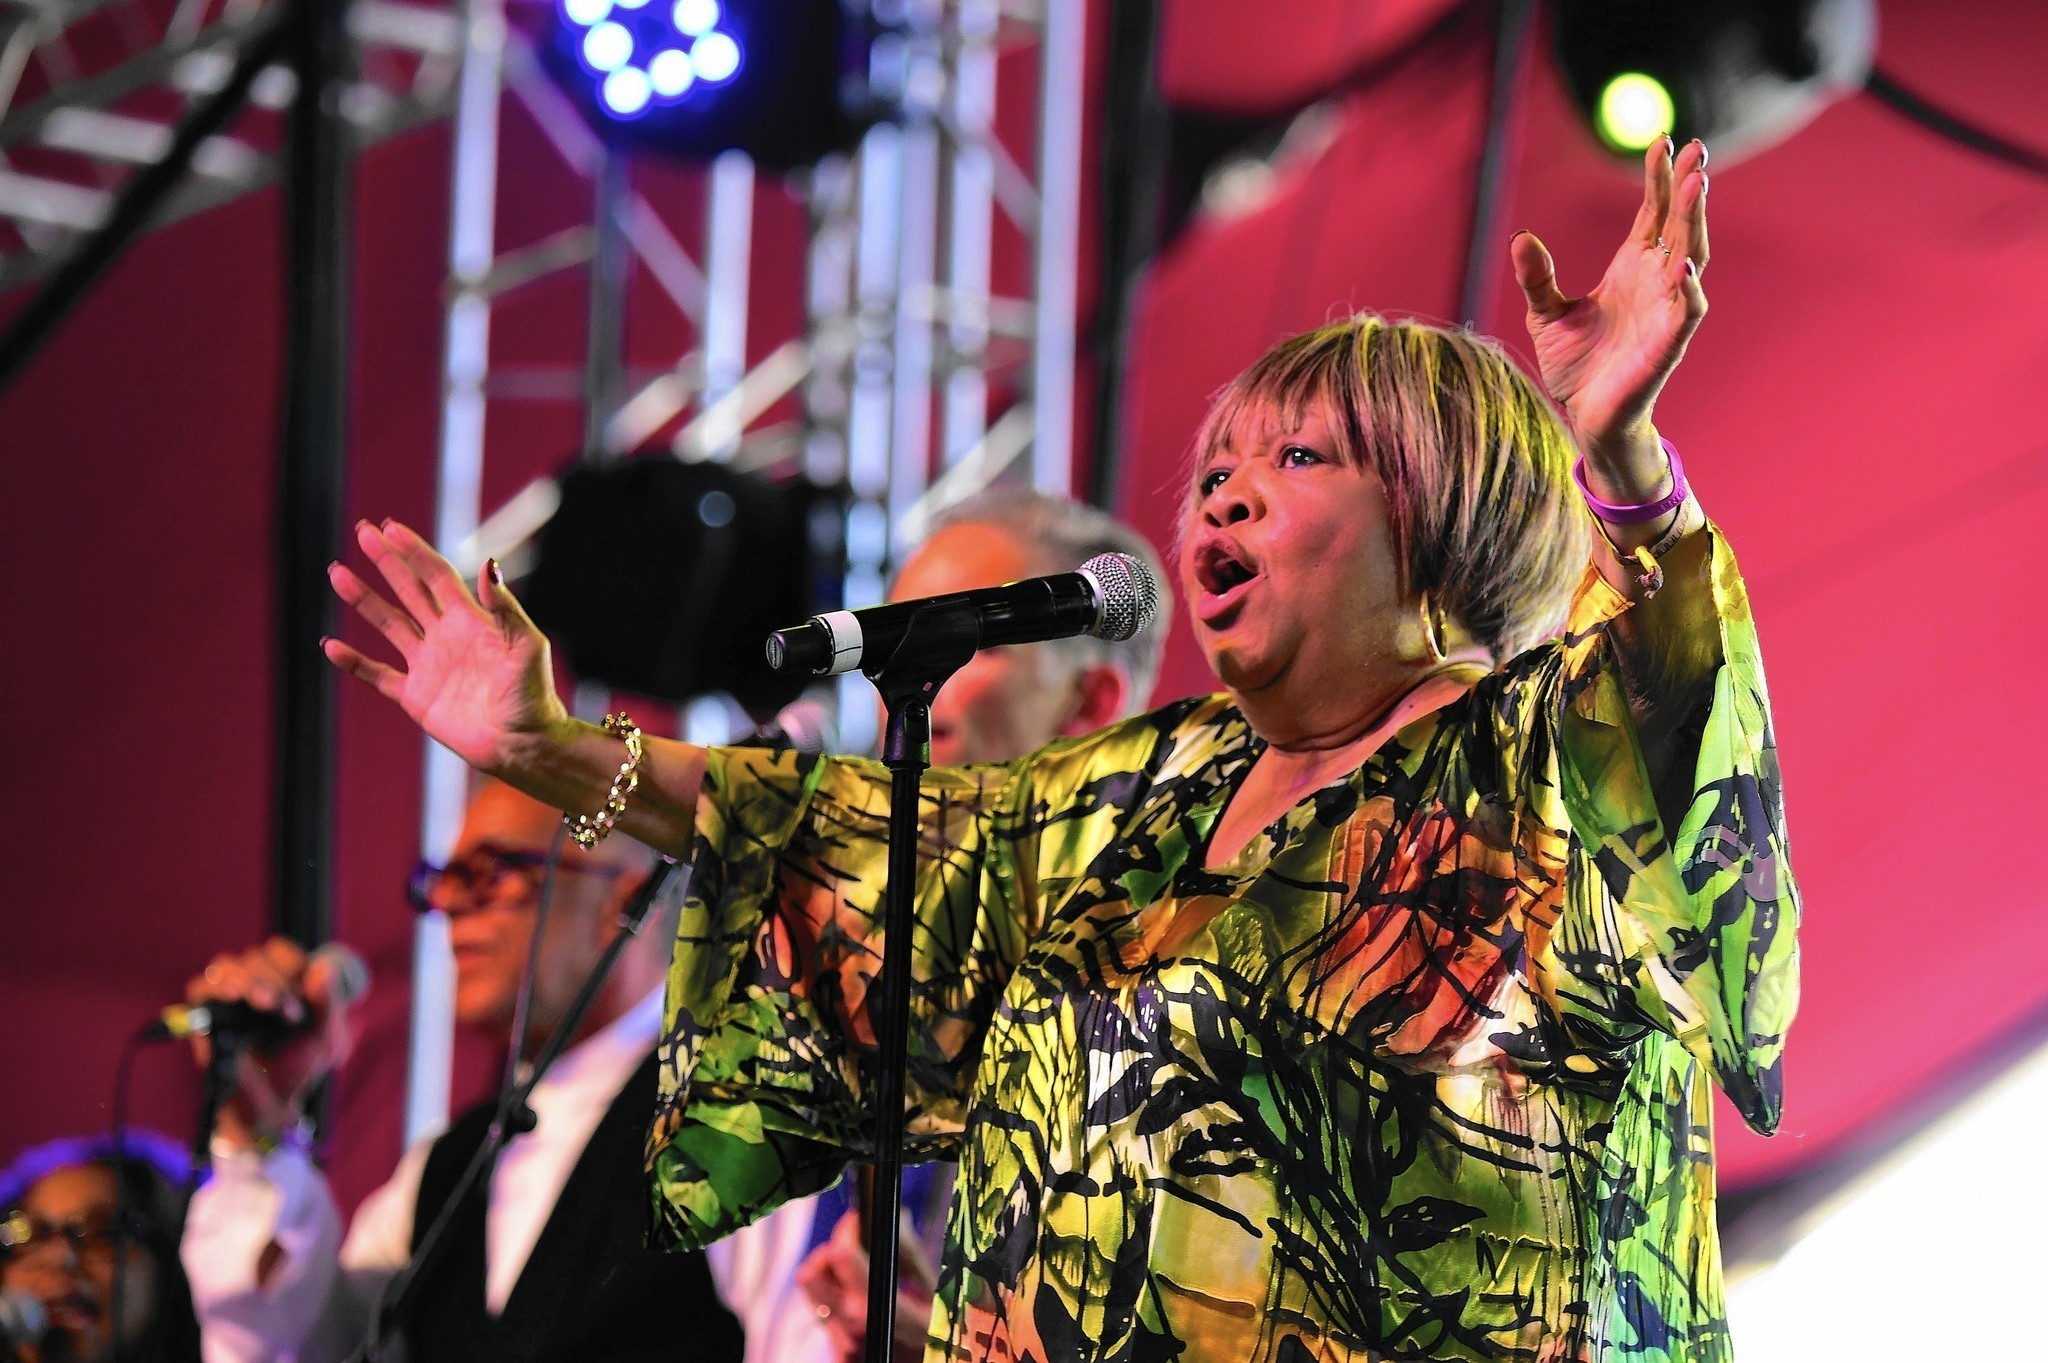 Review Mavis Staples and the Blind Boys of Alabama at the Broward